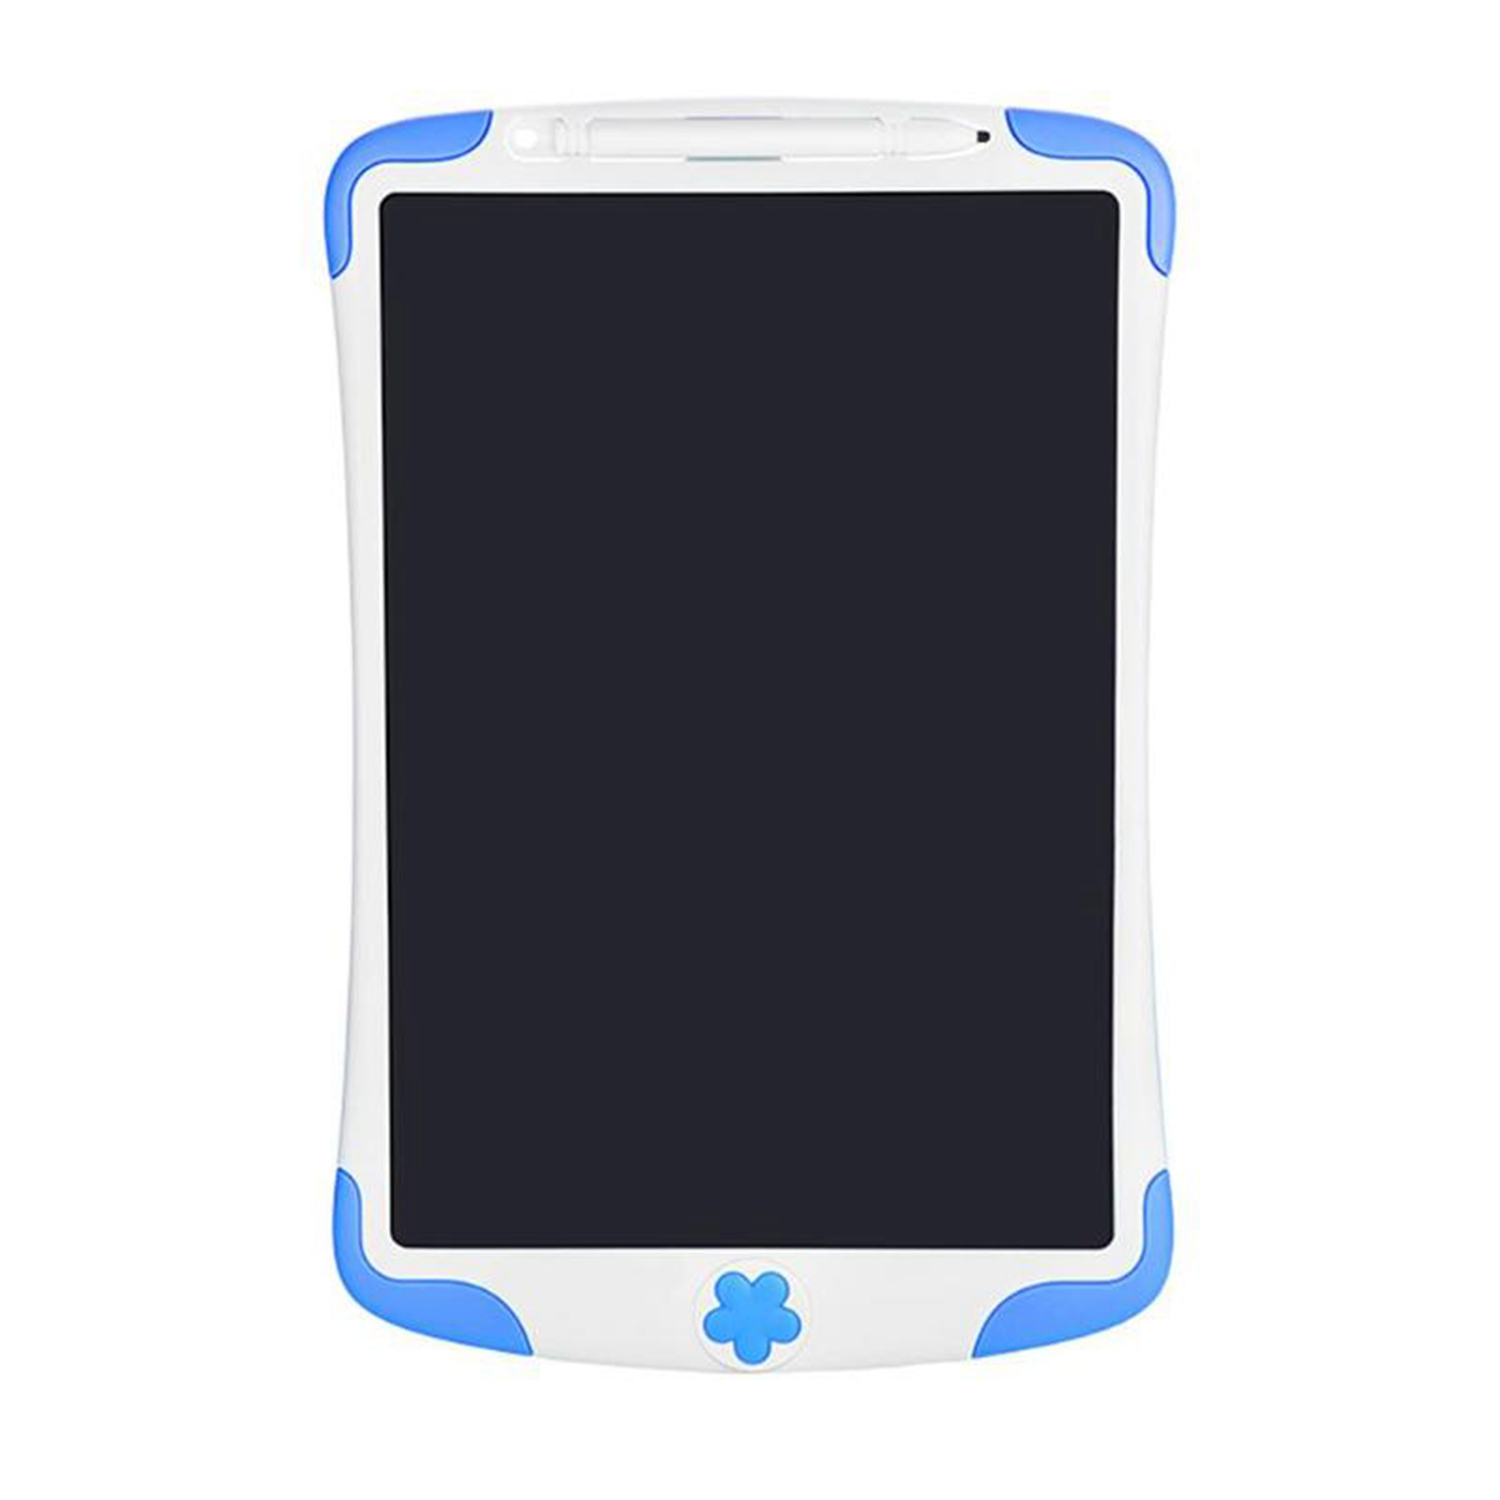 8.5 Inch Lcd Writing Tablet Digital Drawing Tablet Graphic Tablet Electronic Writing Pads Kids Writing Board Children Gifts8.5 Inch Lcd Writing Tablet Digital Drawing Tablet Graphic Tablet Electronic Writing Pads Kids Writing Board Children Gifts